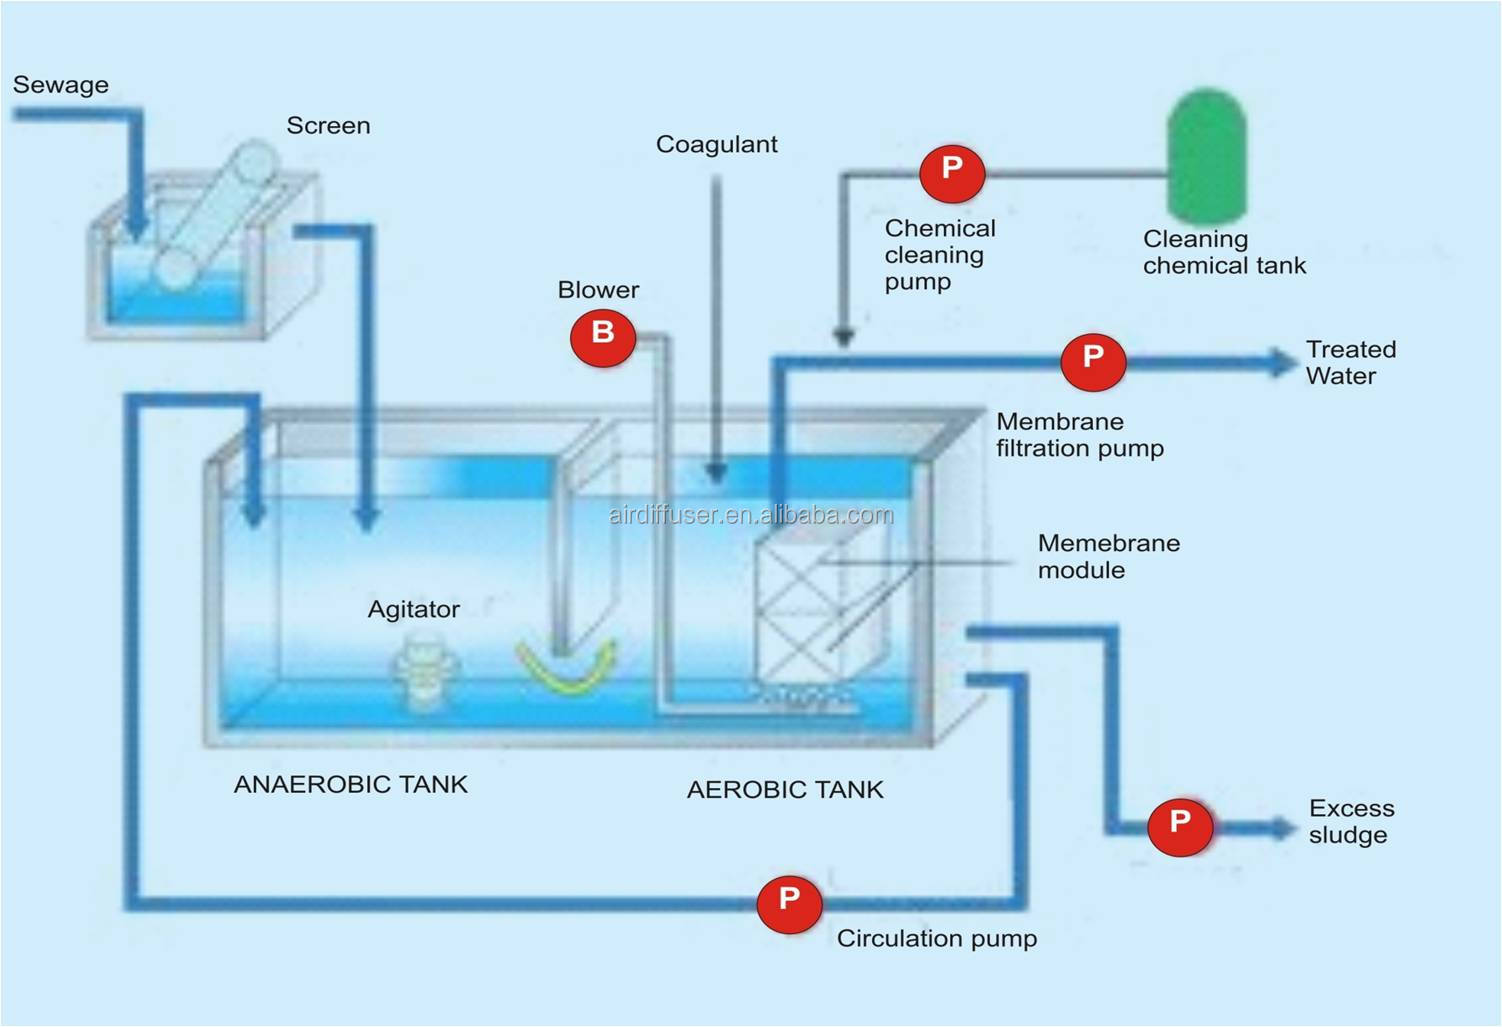 thesis on wastewater treatment plant Wastewater treatment pond systems for plant operators, engineers, and  managers wastewater  wastewater treatment ponds manual includes basic  design.